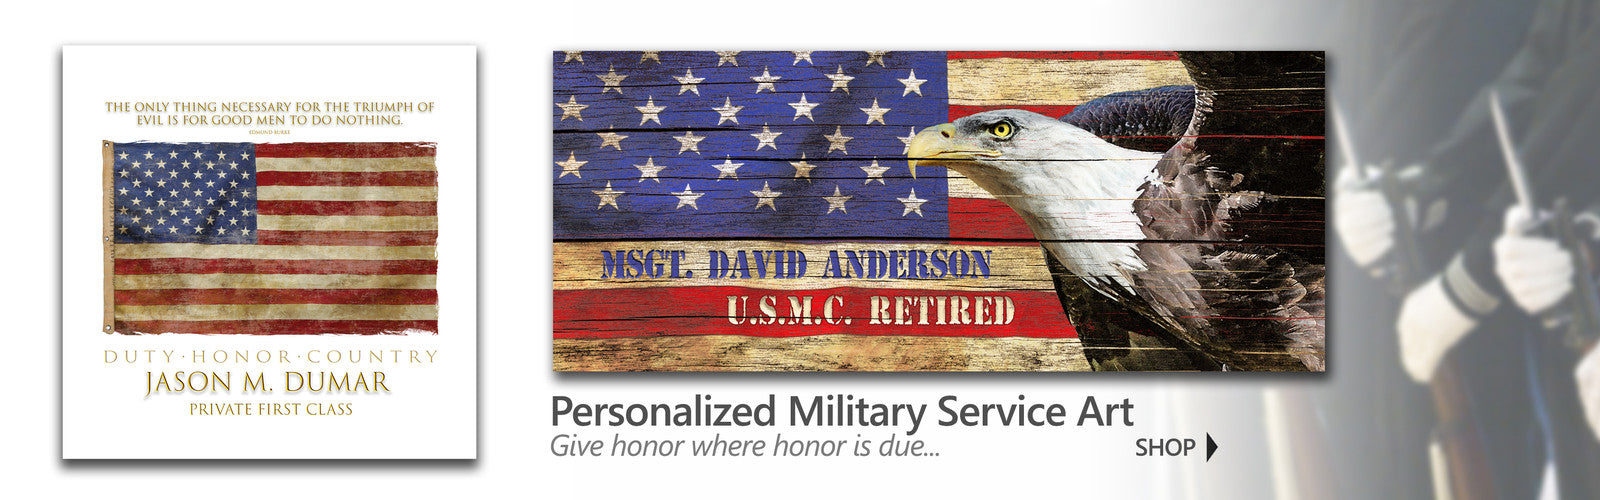 Personalized art for veterans and Memorial Day